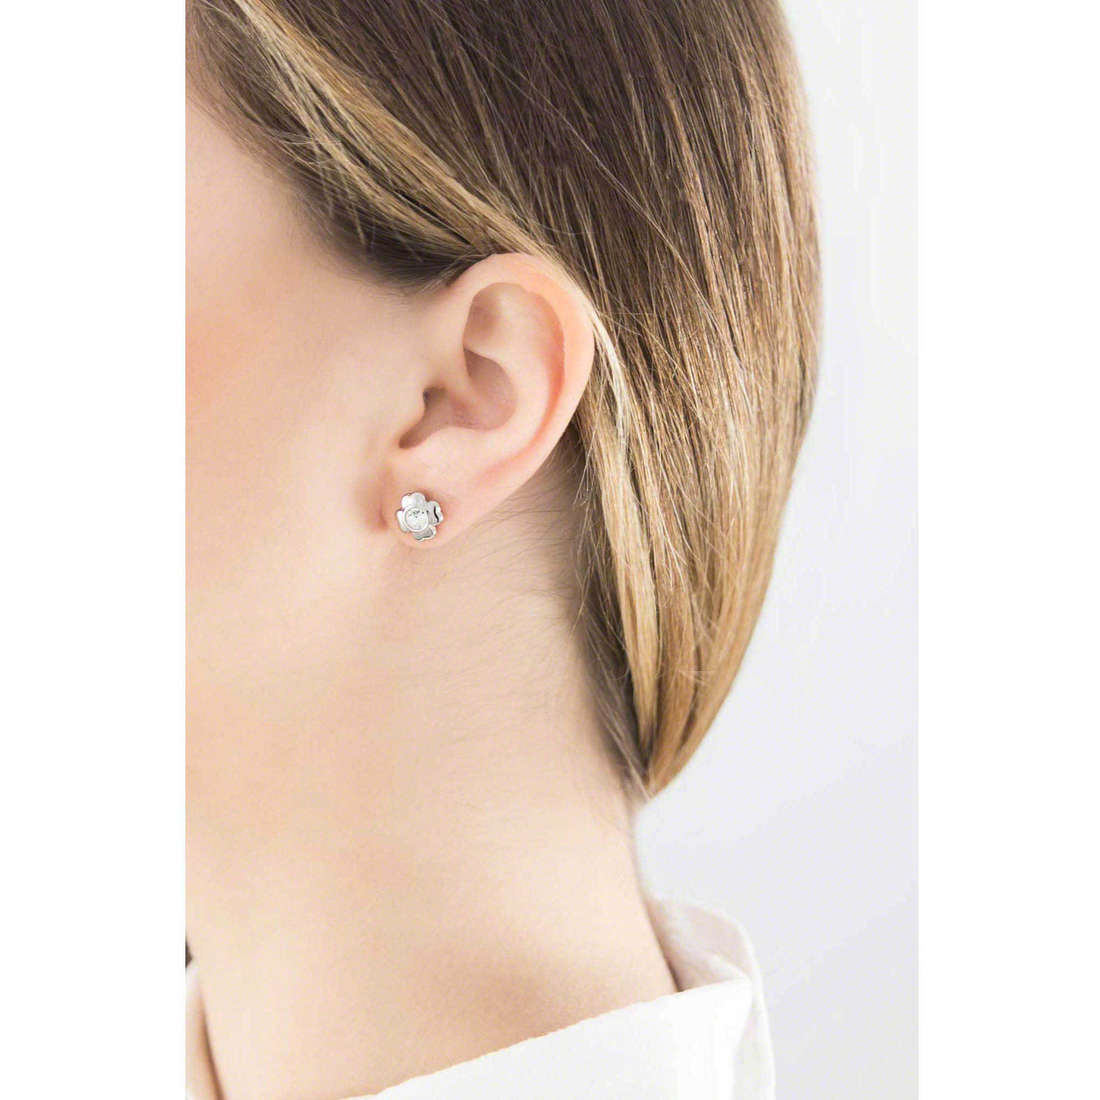 Brosway boucles d'oreille Epsilon femme BEO21 photo wearing